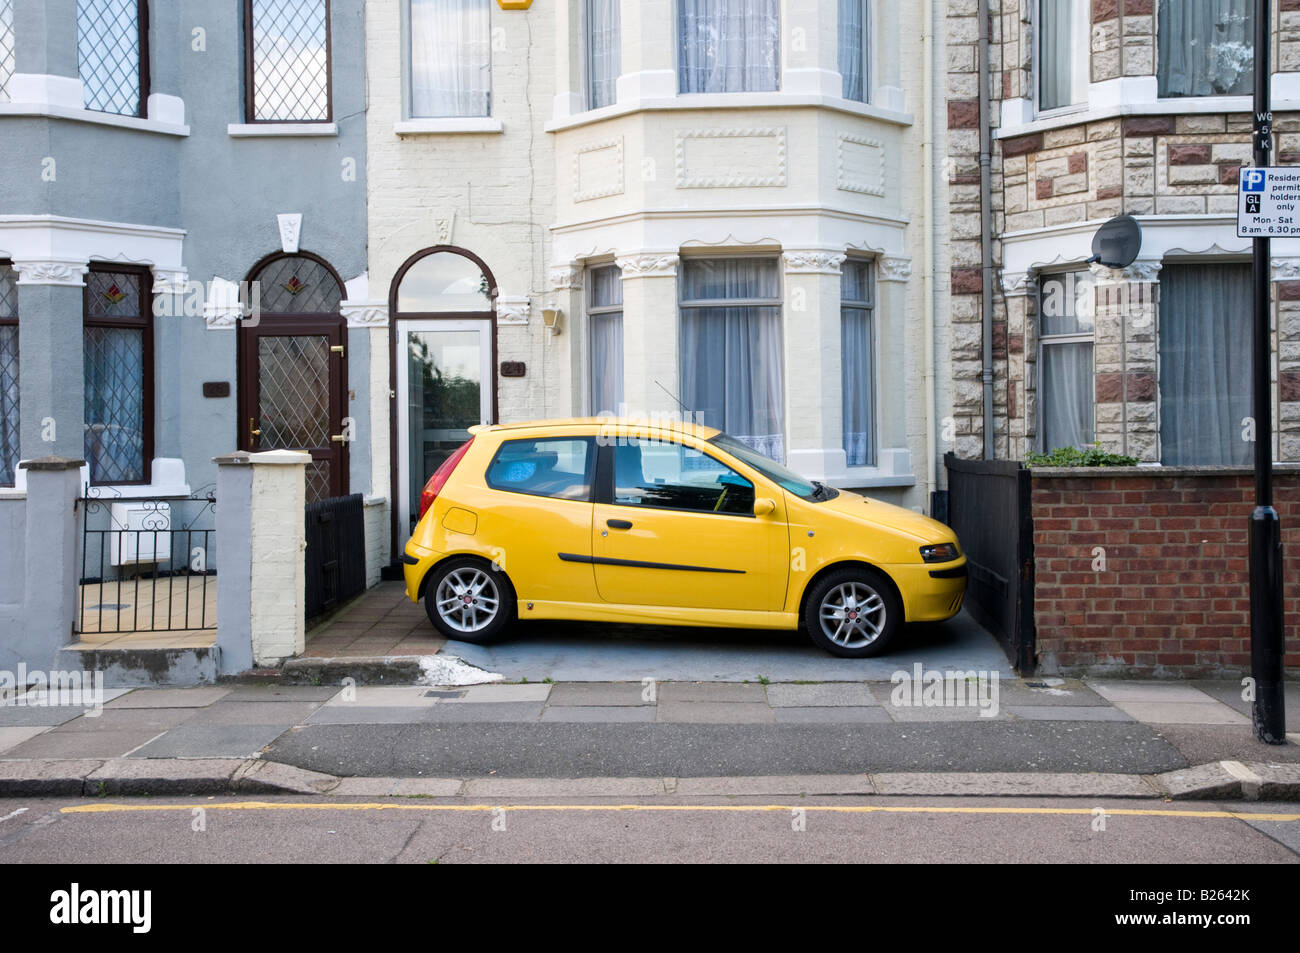 Car parked in front garden of terraced house, London, England, UK - Stock Image